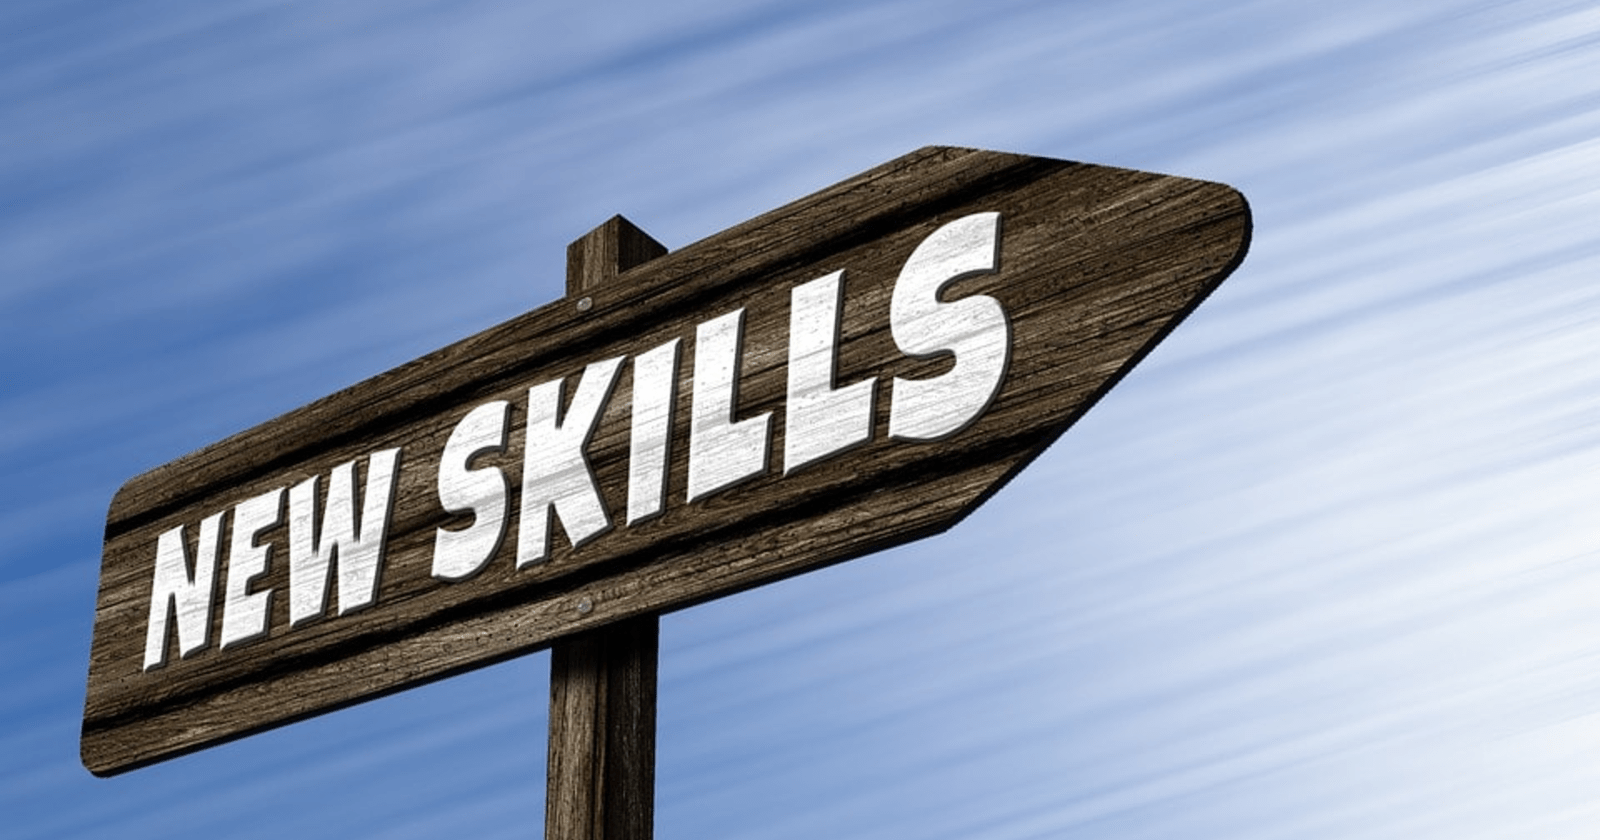 Top 8 Skills Every Great SEO Professional Needs to Succeed by @RyanJones